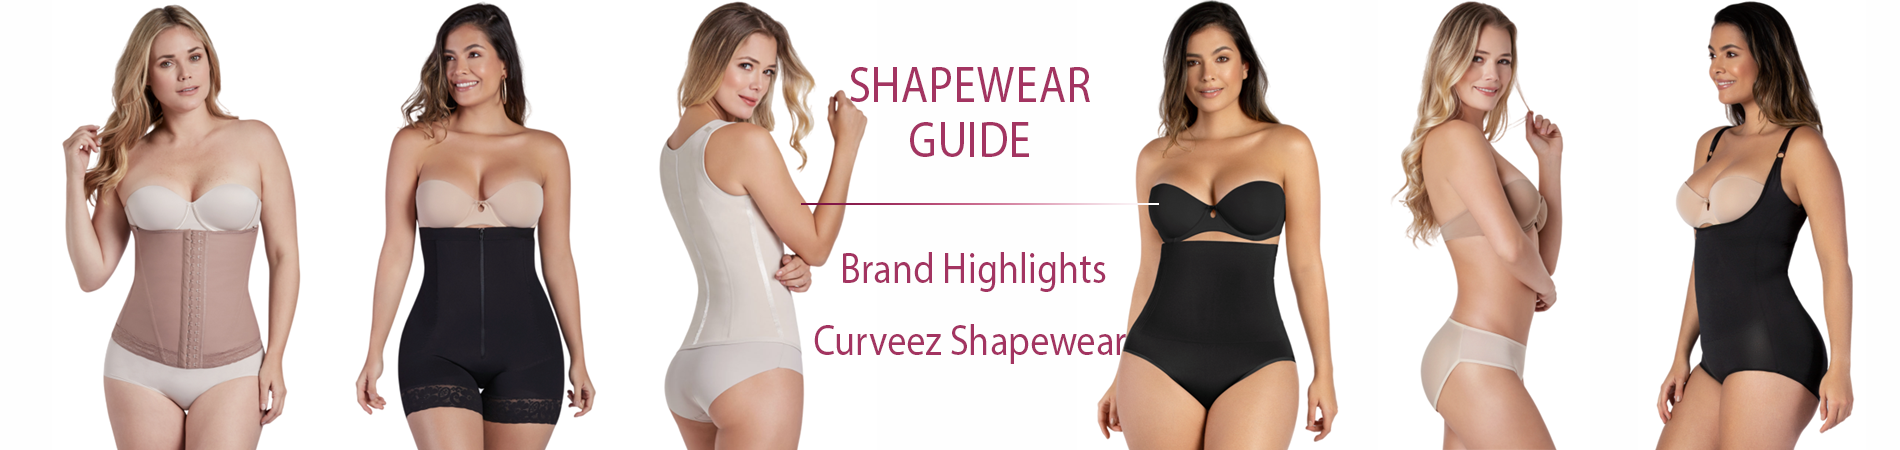 Brand Highlights - Curveez Shapewear